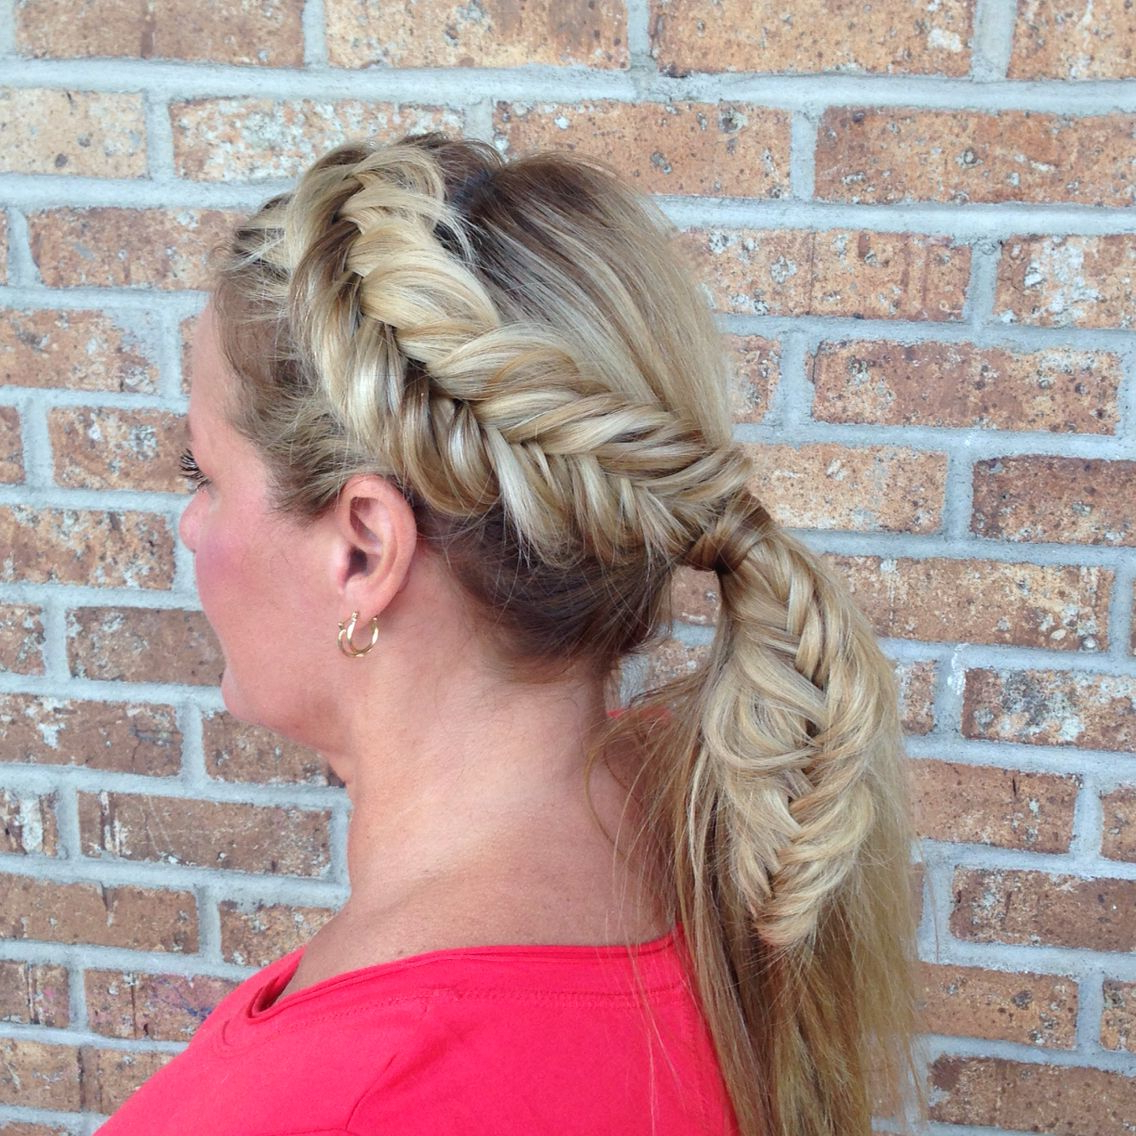 Current Fishtail Updo Braid Hairstyles With Fishtail Braid, Wedding Hair, Braided Updo, Updo, Hair Art (View 7 of 20)